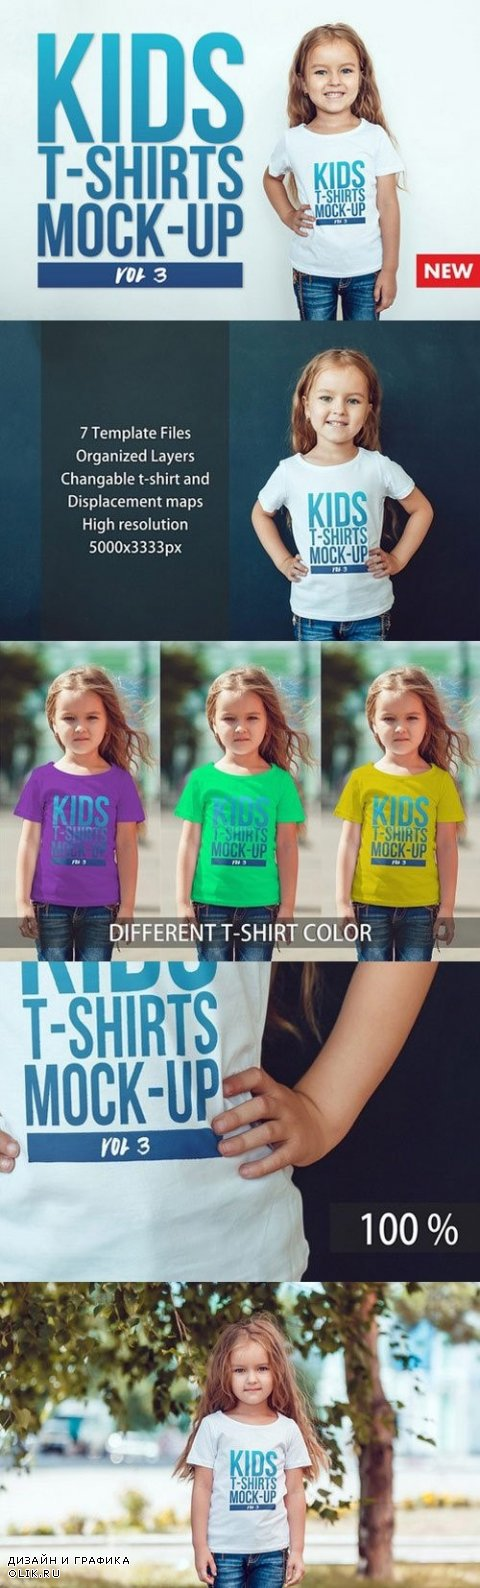 Kids T-Shirt Mock-Up Vol 3 - 895278